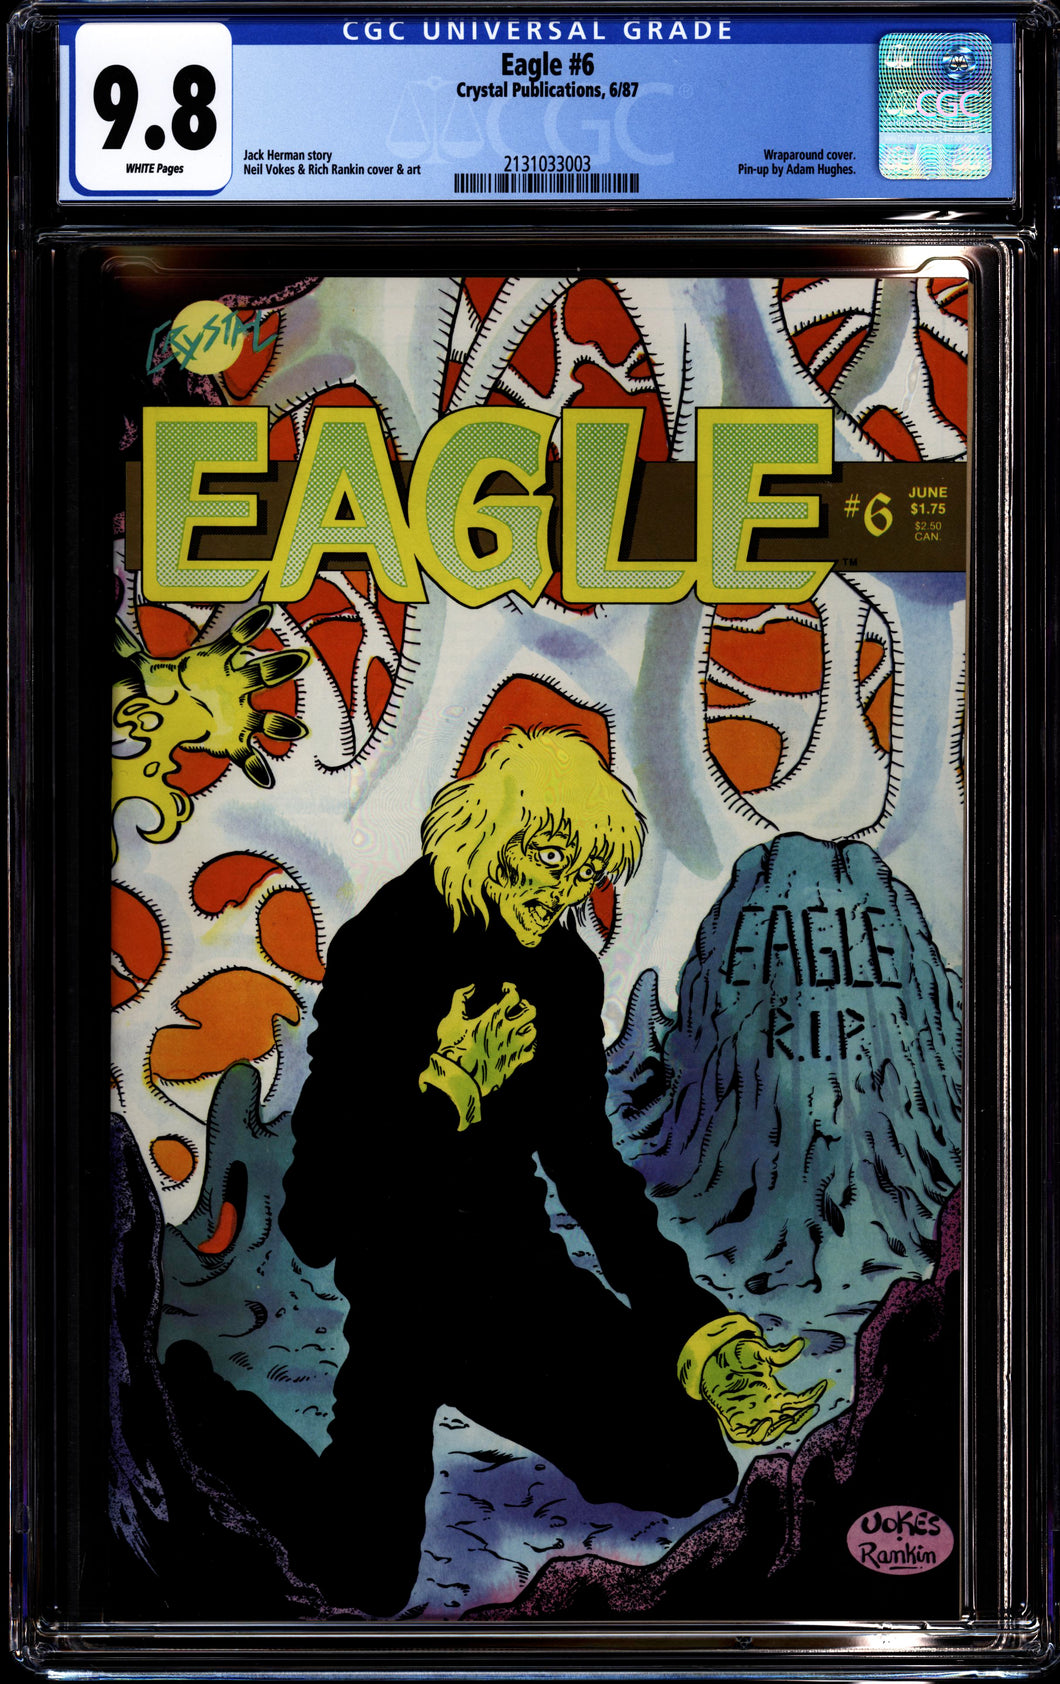 EAGLE #6 (1987 Crystal Publications) CGC HIGHEST GRADED 9.8 NM/M 1st Adam Hughes